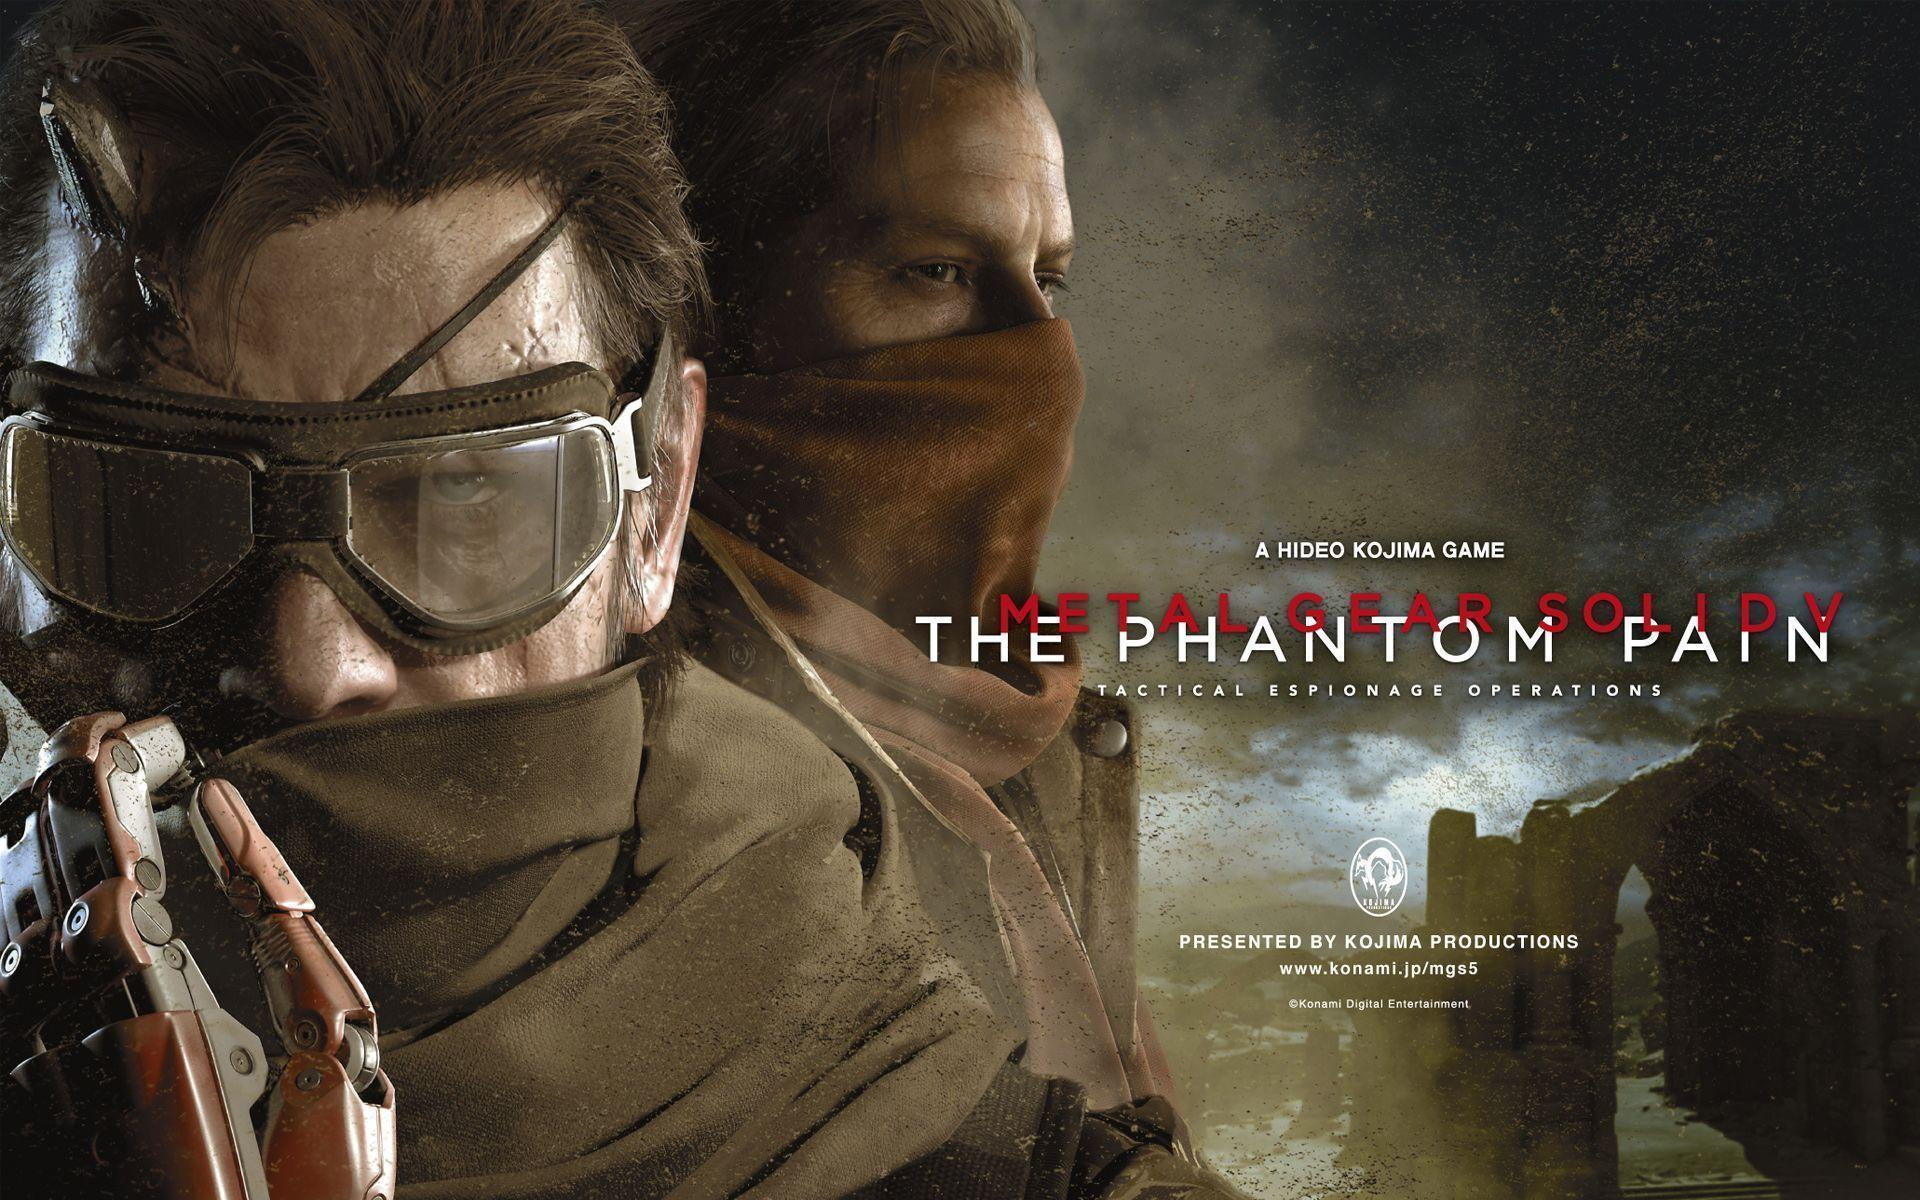 Metal Gear Solid V The Phantom Pain Wallpapers | HD Wallpapers